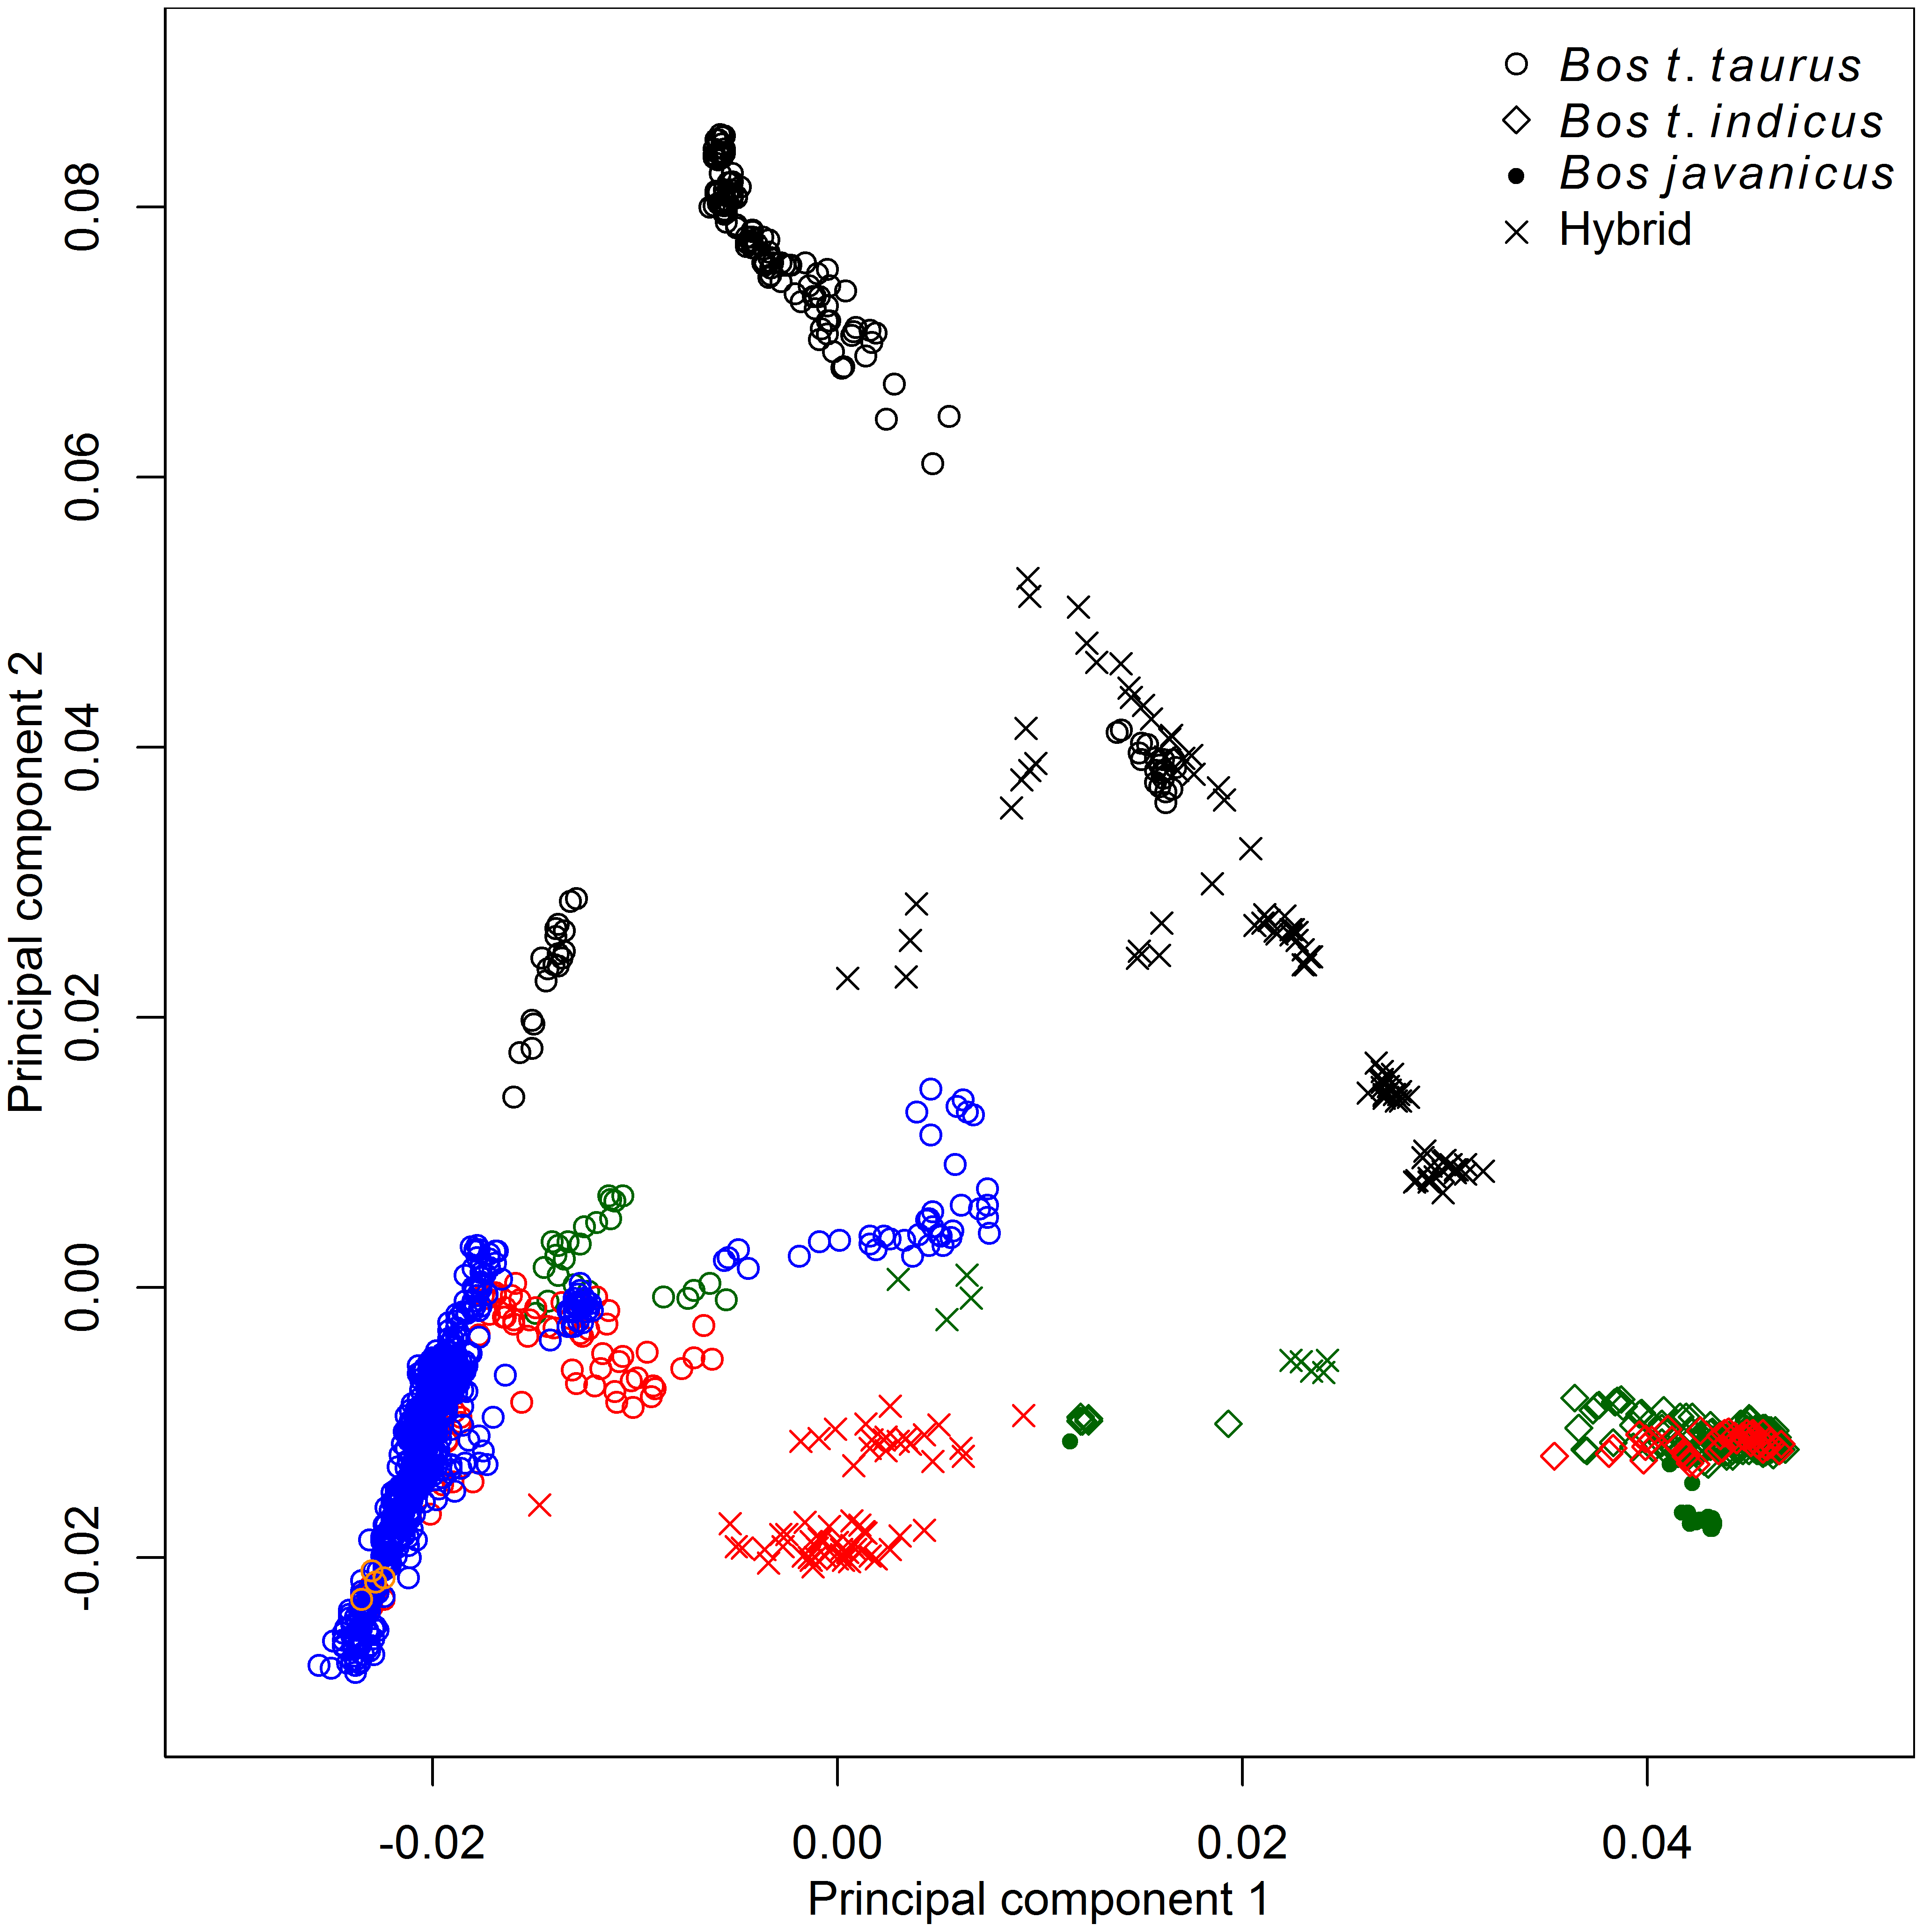 Principal component analysis of 1,543 animals genotyped with 43,043 SNPs.